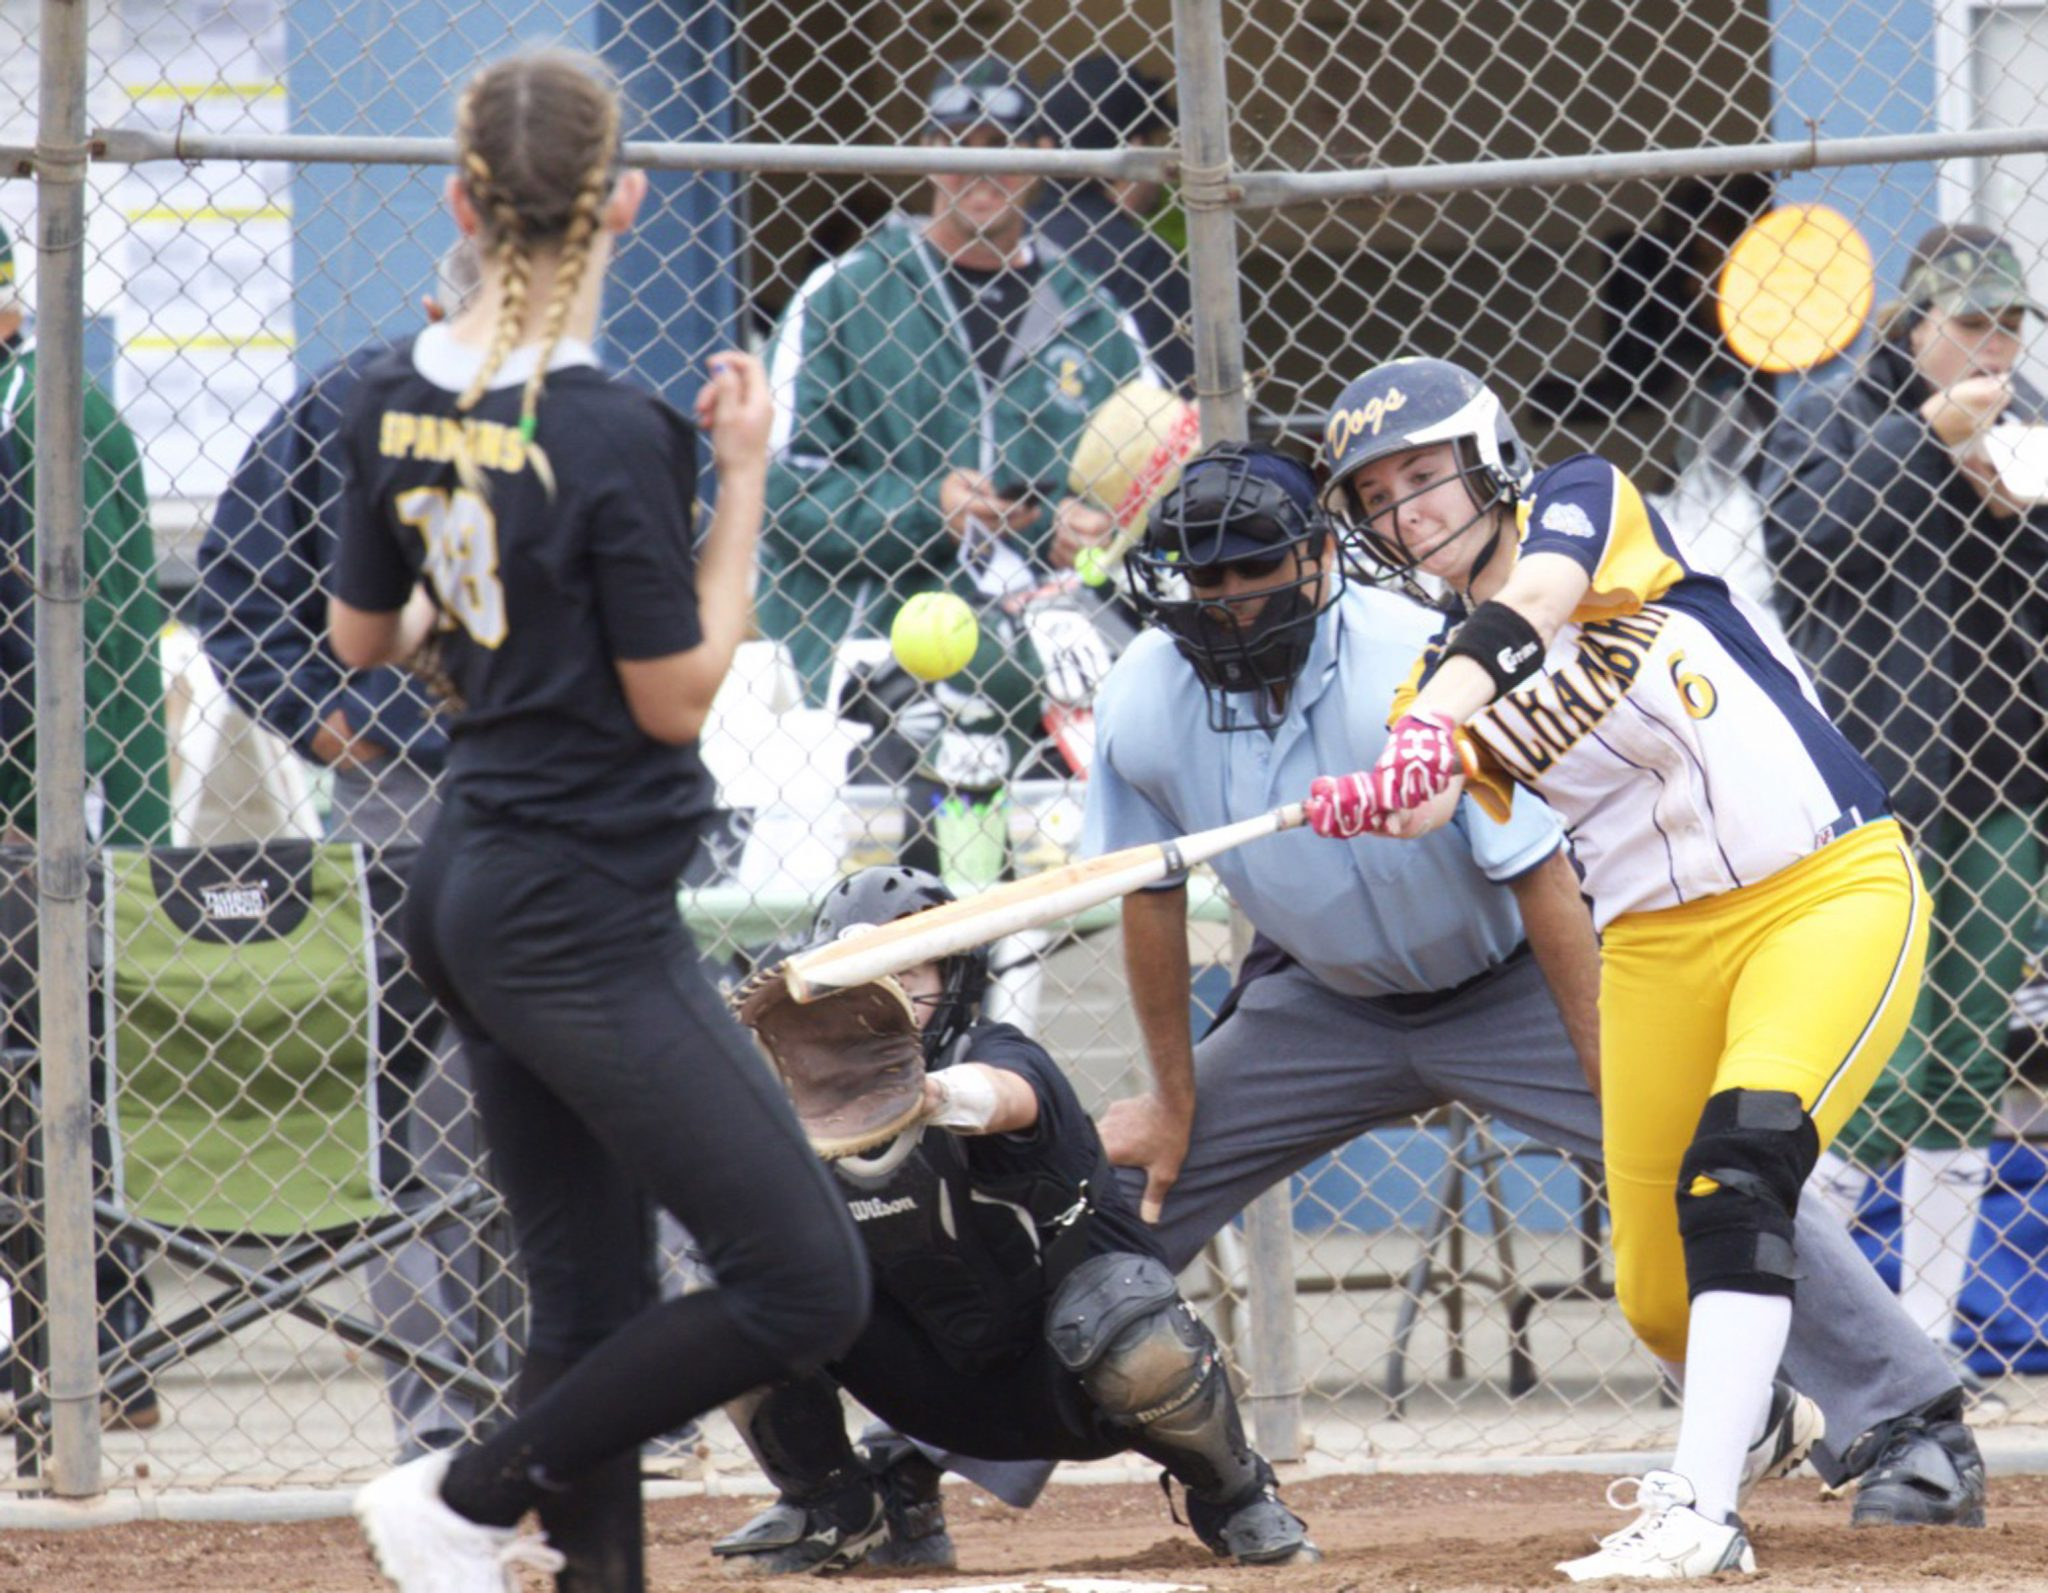 First baseman Regan Silva had an RBI-double in the win. (MARK FIERNER / Martinez Tribune)